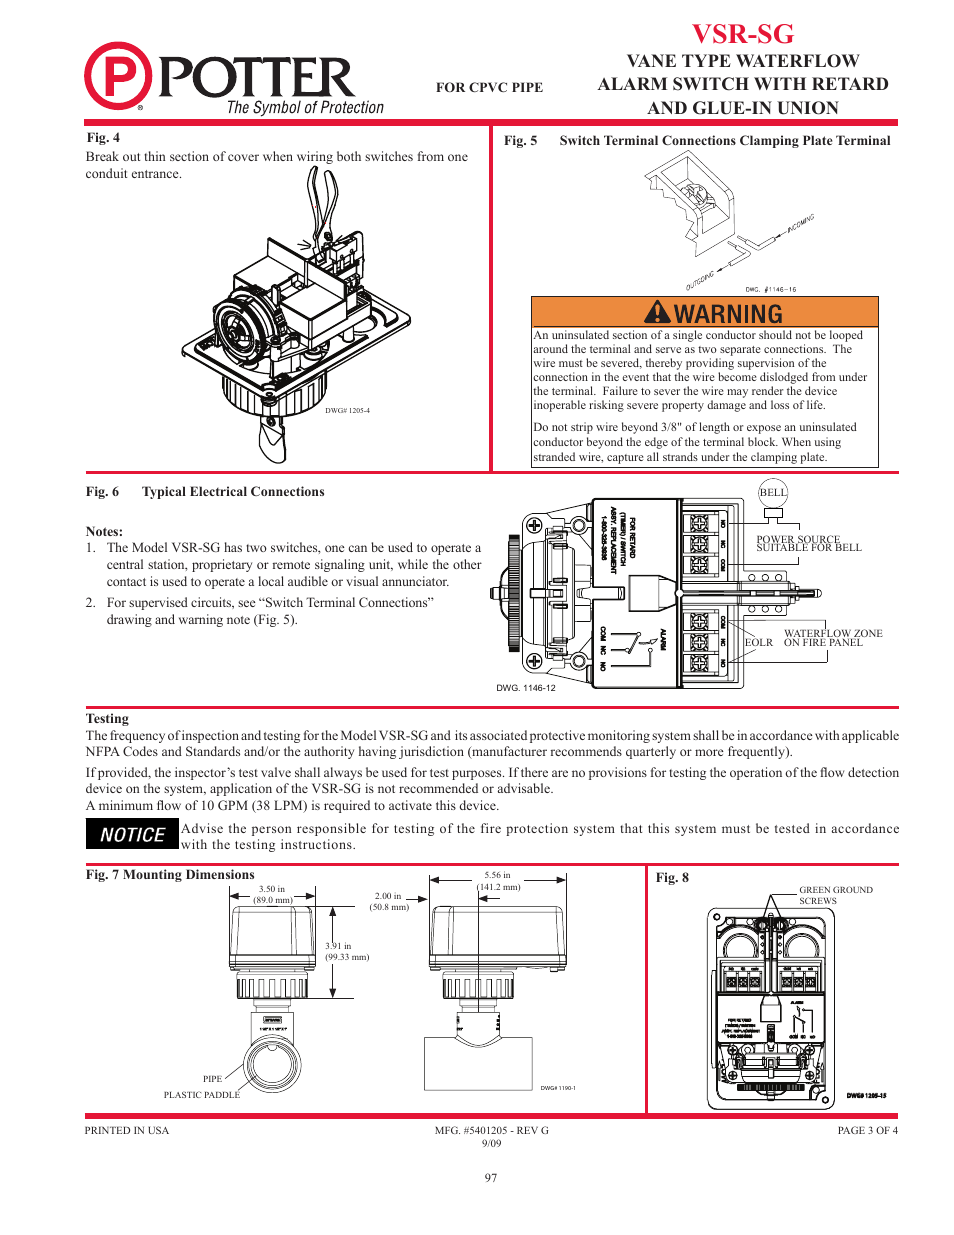 medium resolution of  wiring diagram vsr sg potter releasing systems user manual page 97 108 on fire